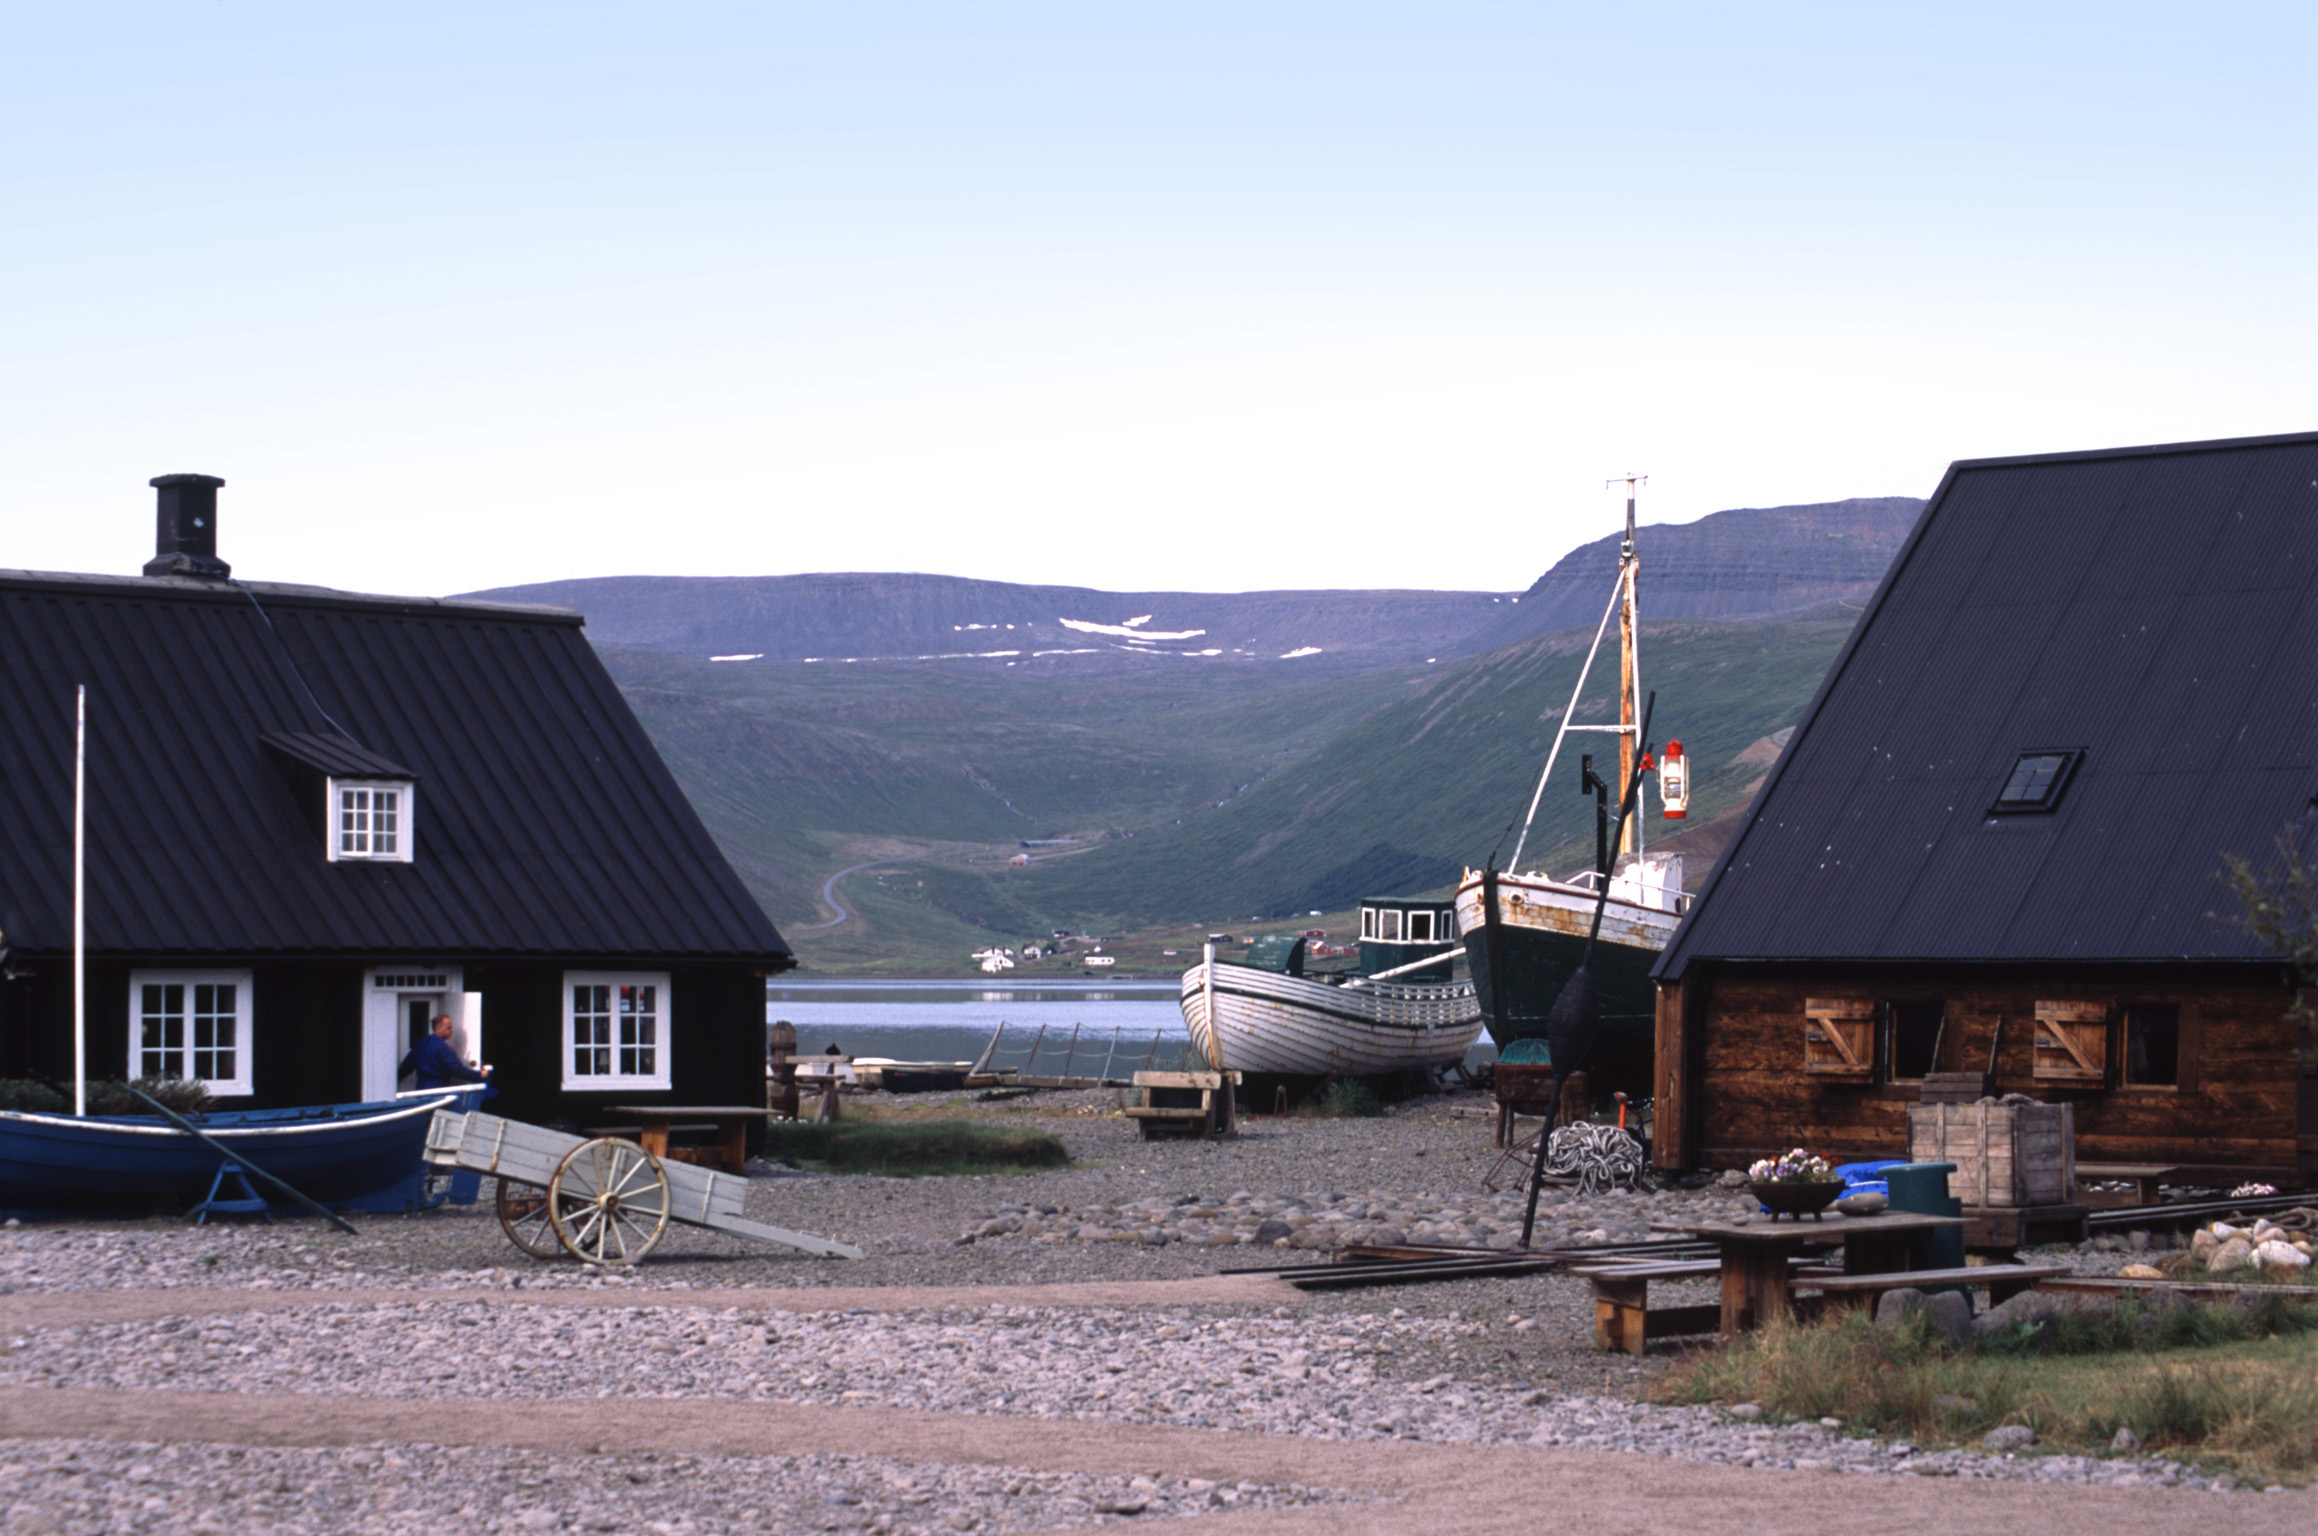 Iceland village on the edge of a bay or meltwater lake with fishing boats pulled ashore on the sand between the cottages